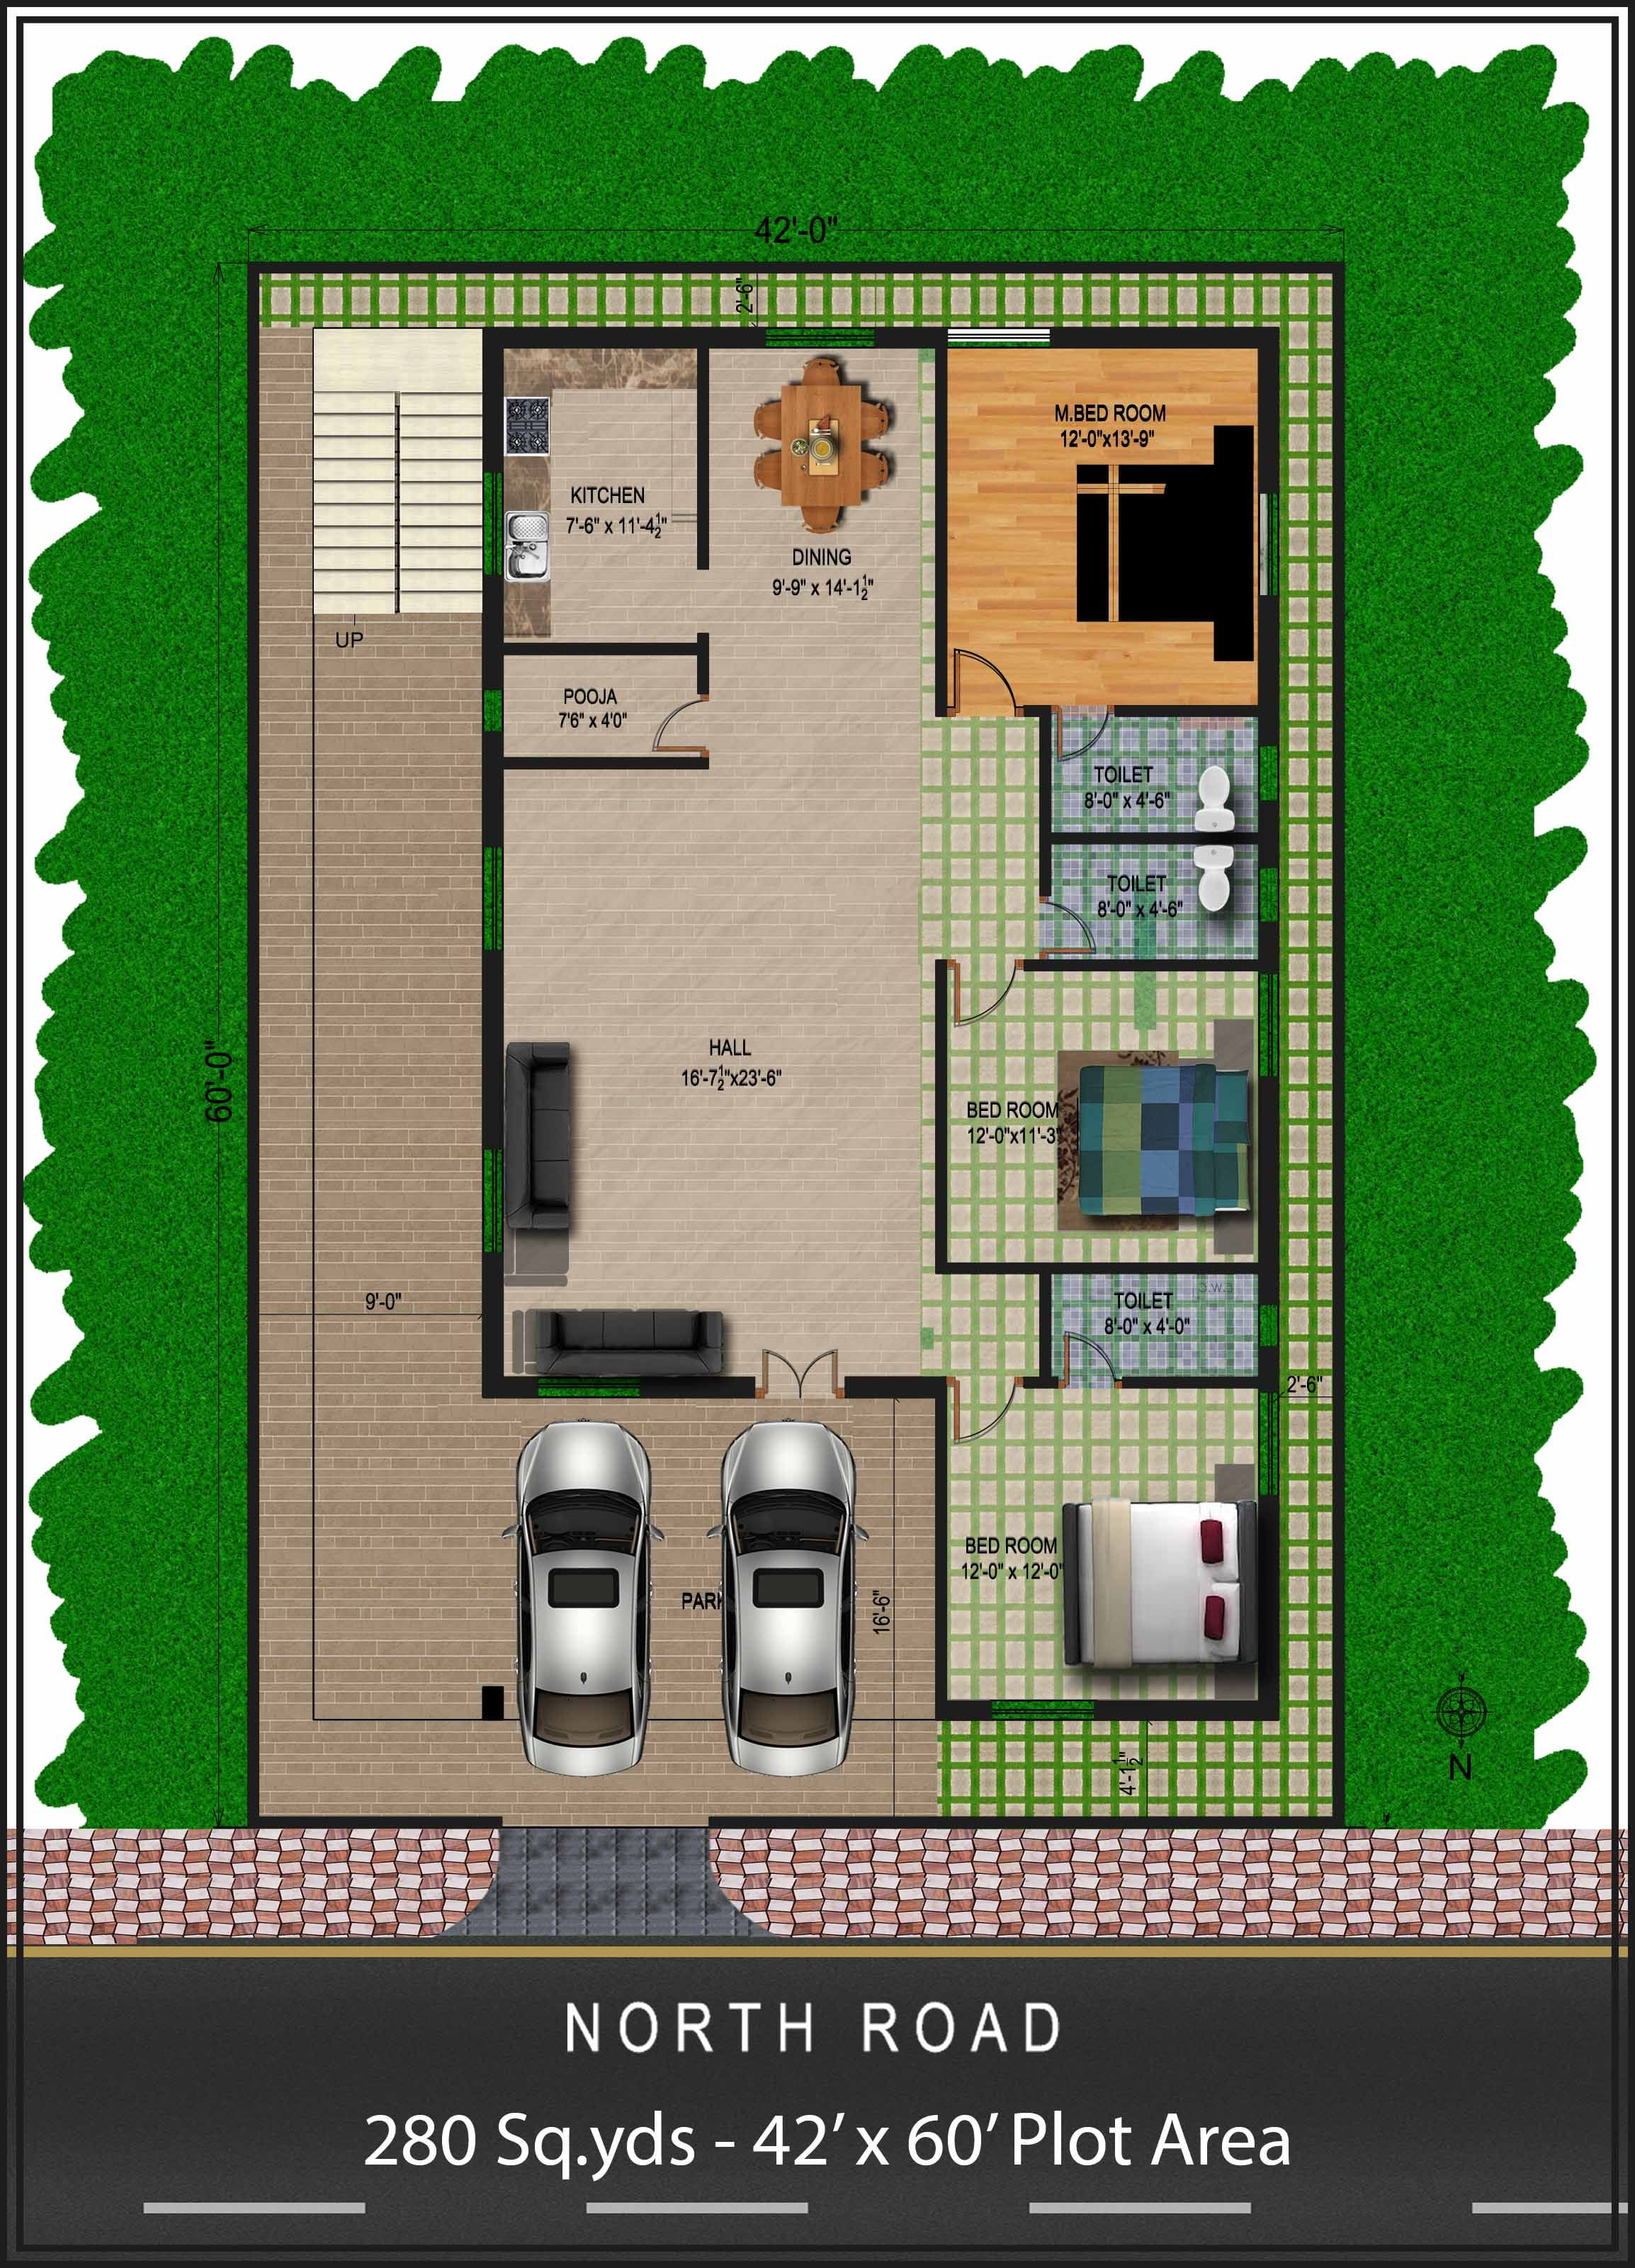 30x40 2 bedroom house plans plans for east facing plot vastu